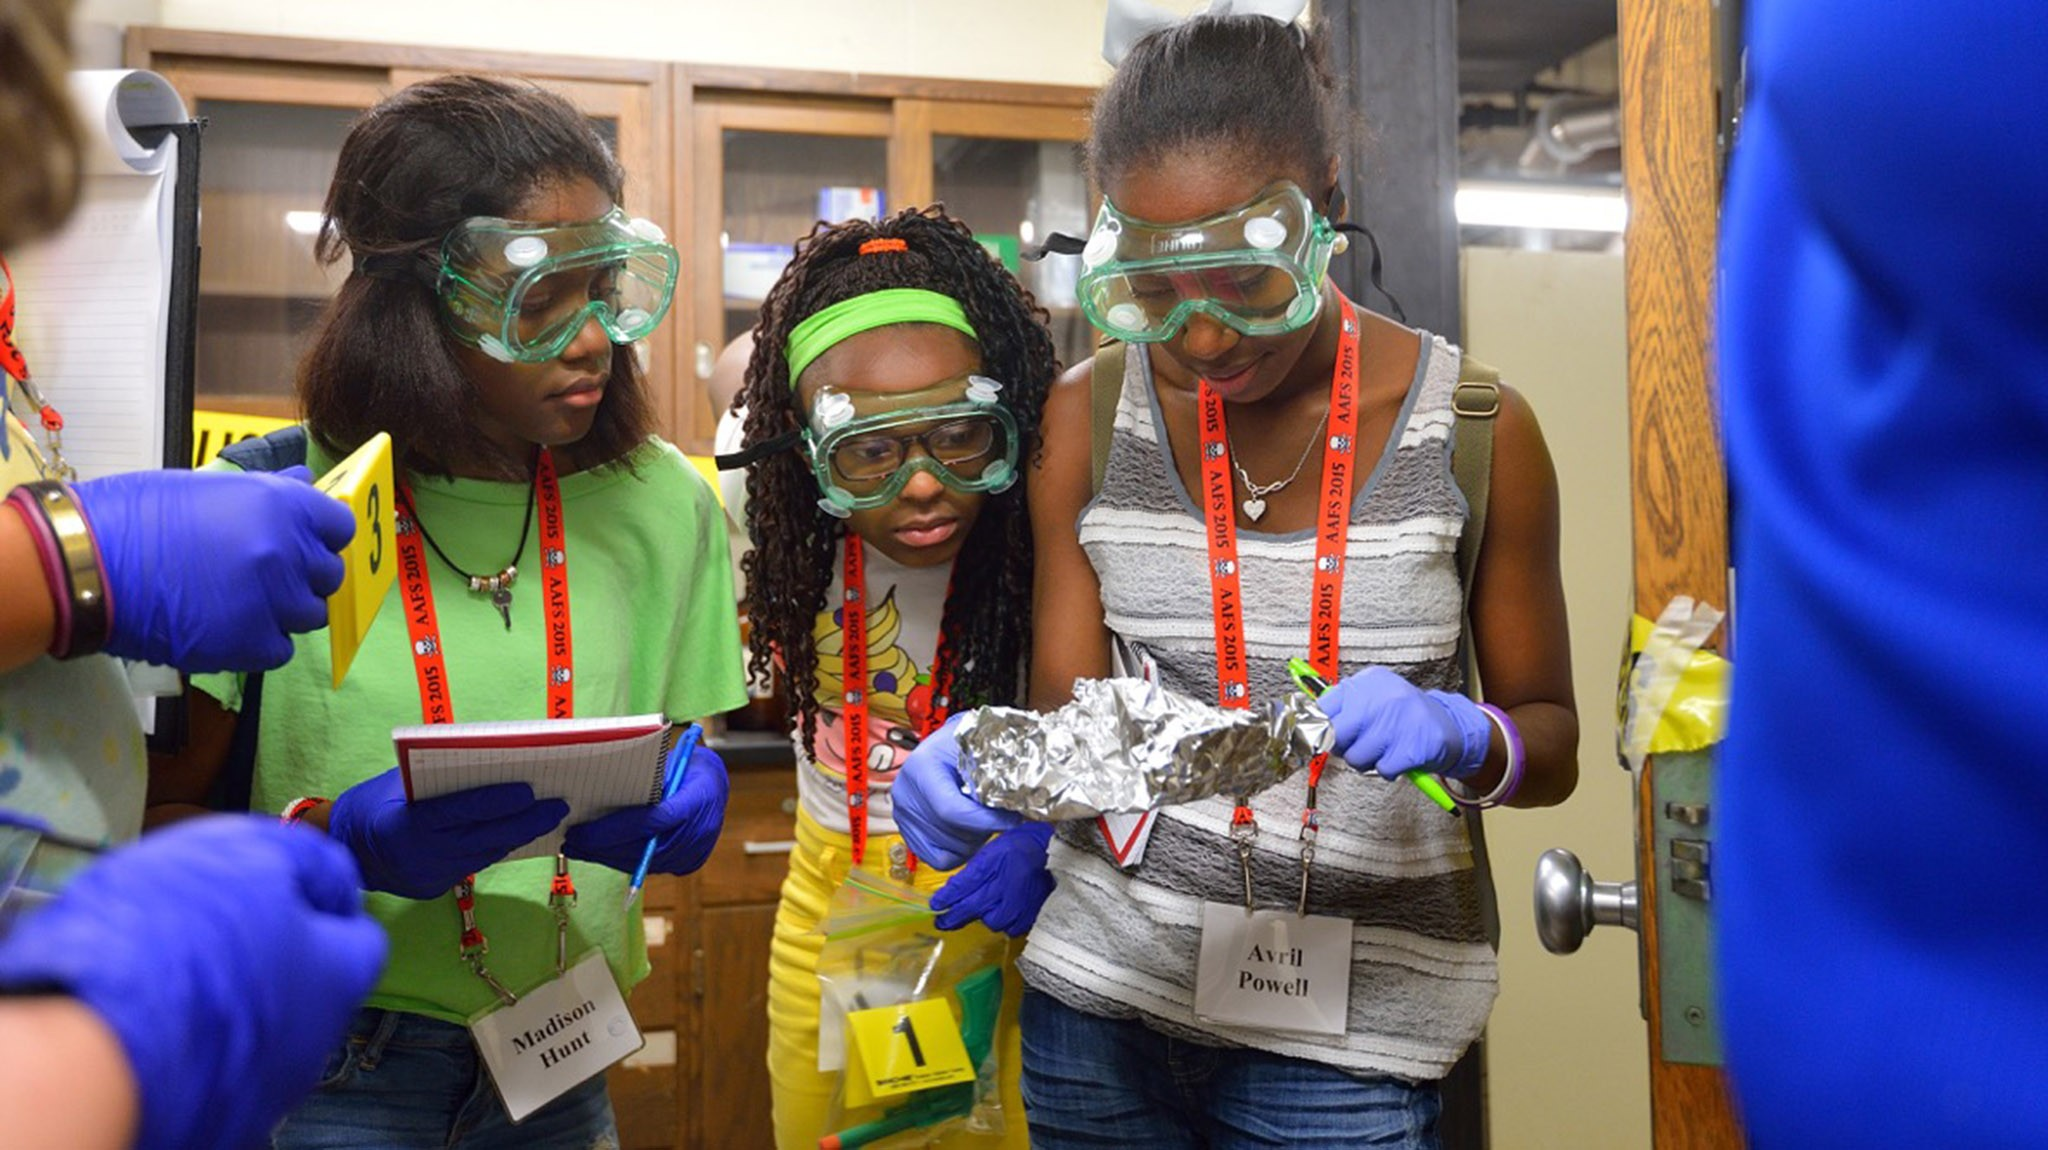 CSI Summer Camp participants look for potential evidence in a staged crime scene. Photo by Robert Jordan/Ole Miss Communications